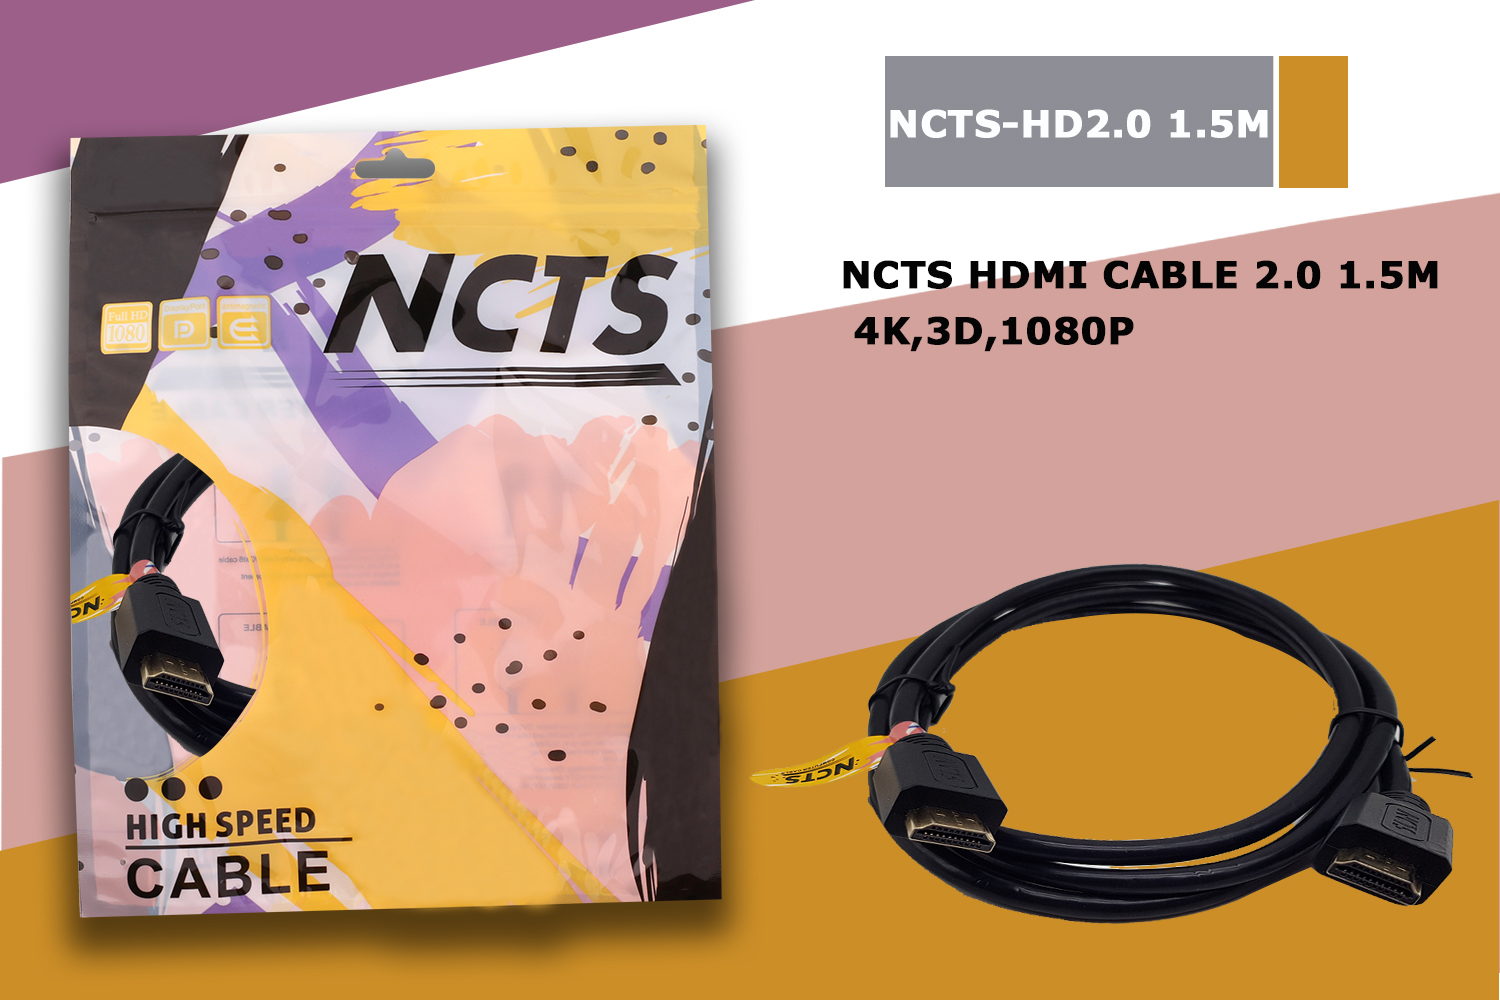 HDMI CABLE 2.0 1.5M 4K,3D,1080P